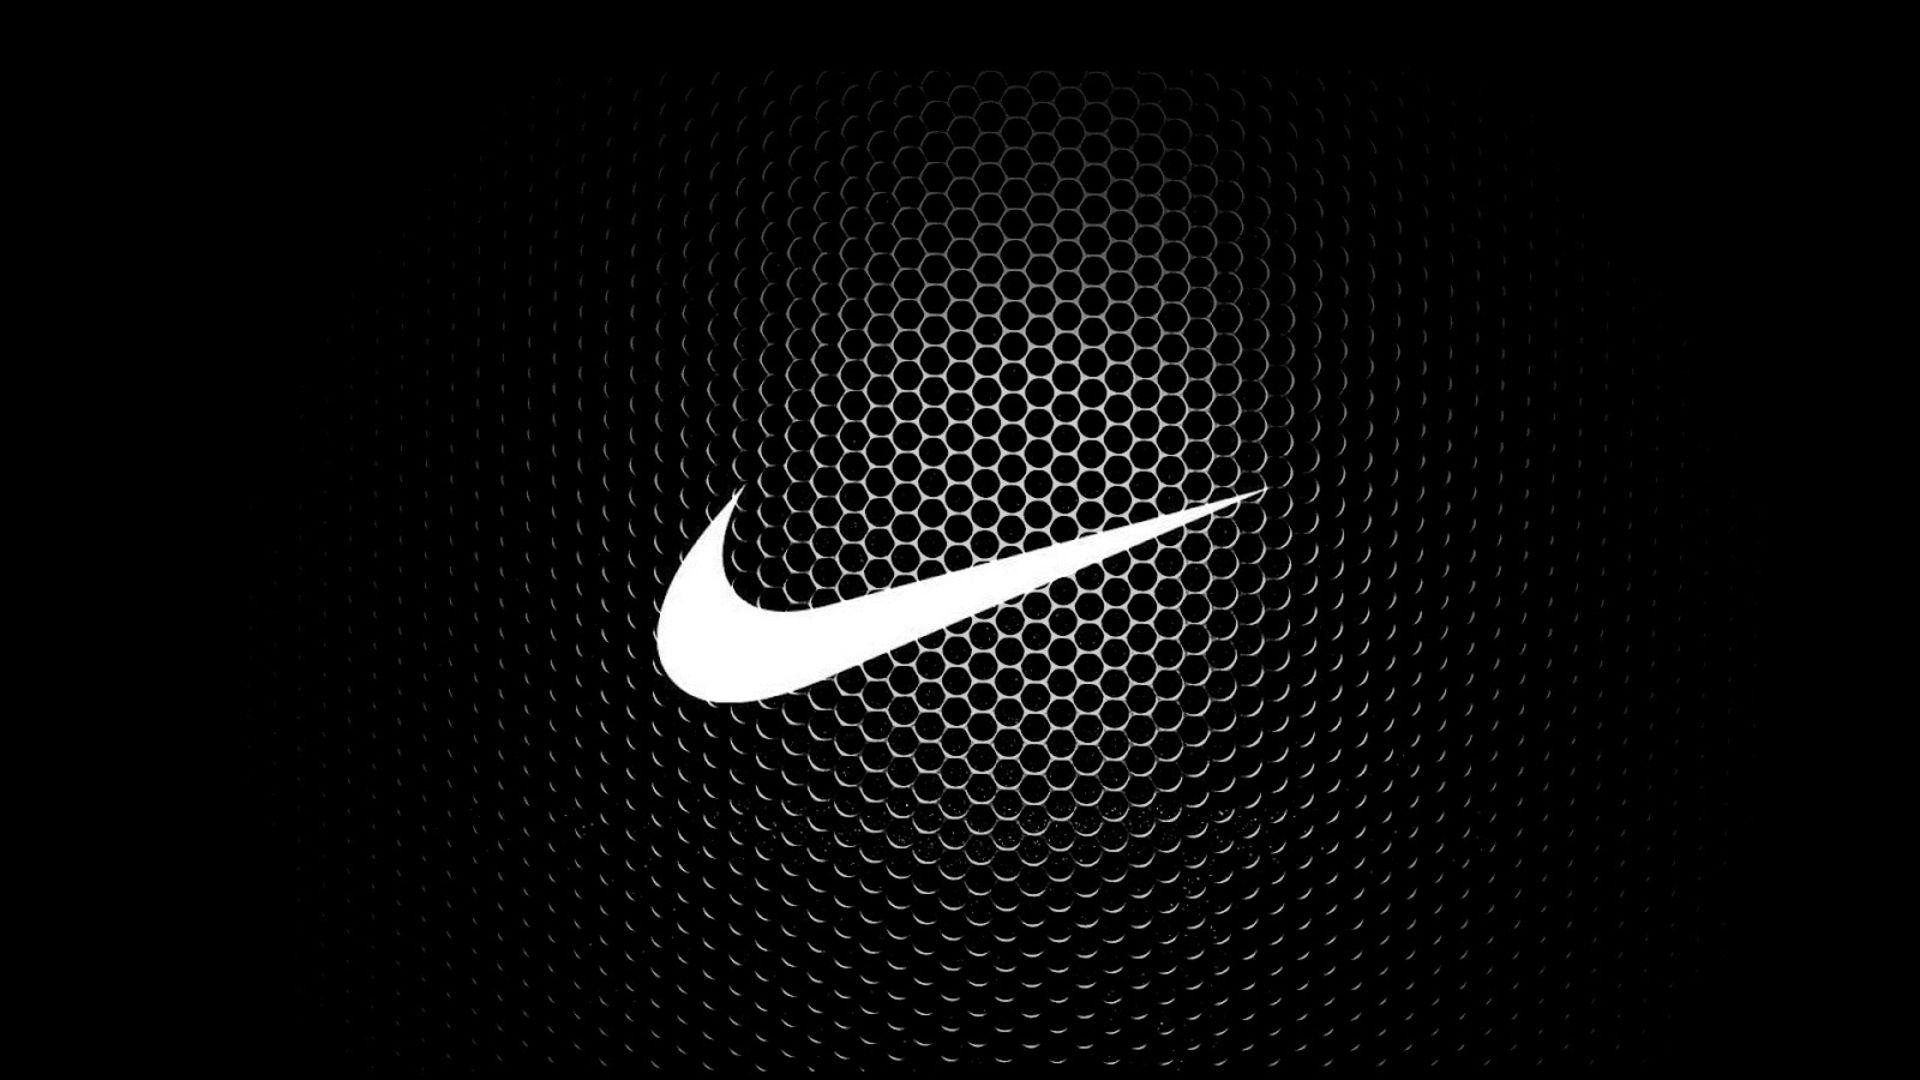 1920x1080 1378724 Nike wallpaper HD free wallpapers backgrounds images FHD .